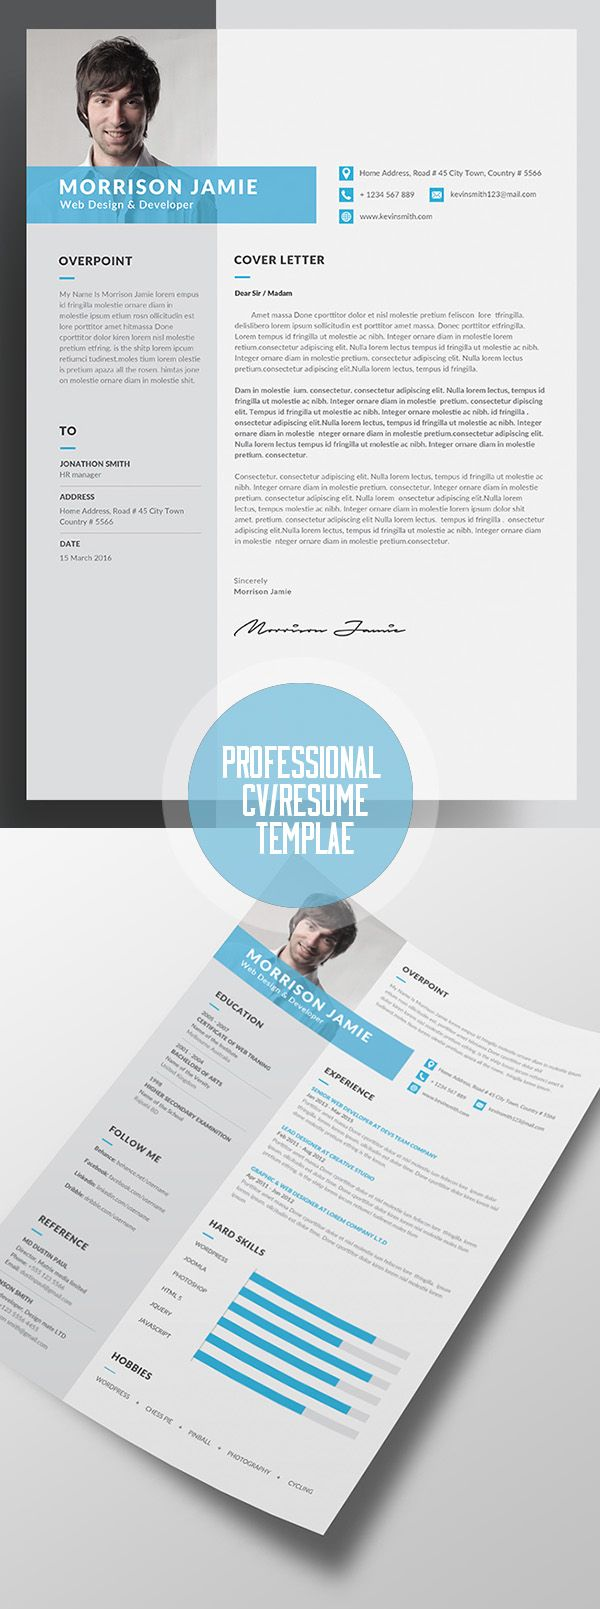 Wonderful 10 Best Resume Tips Thin 10 Steps To Writing A Resume Regular 1st Birthday Coloring Pages 1st Birthday Invitations Templates Young 2 Page Resume Format For Experienced Red20 Dollar Bill Template 25  Best Ideas About Cv Format Sample On Pinterest | Layout Cv ..